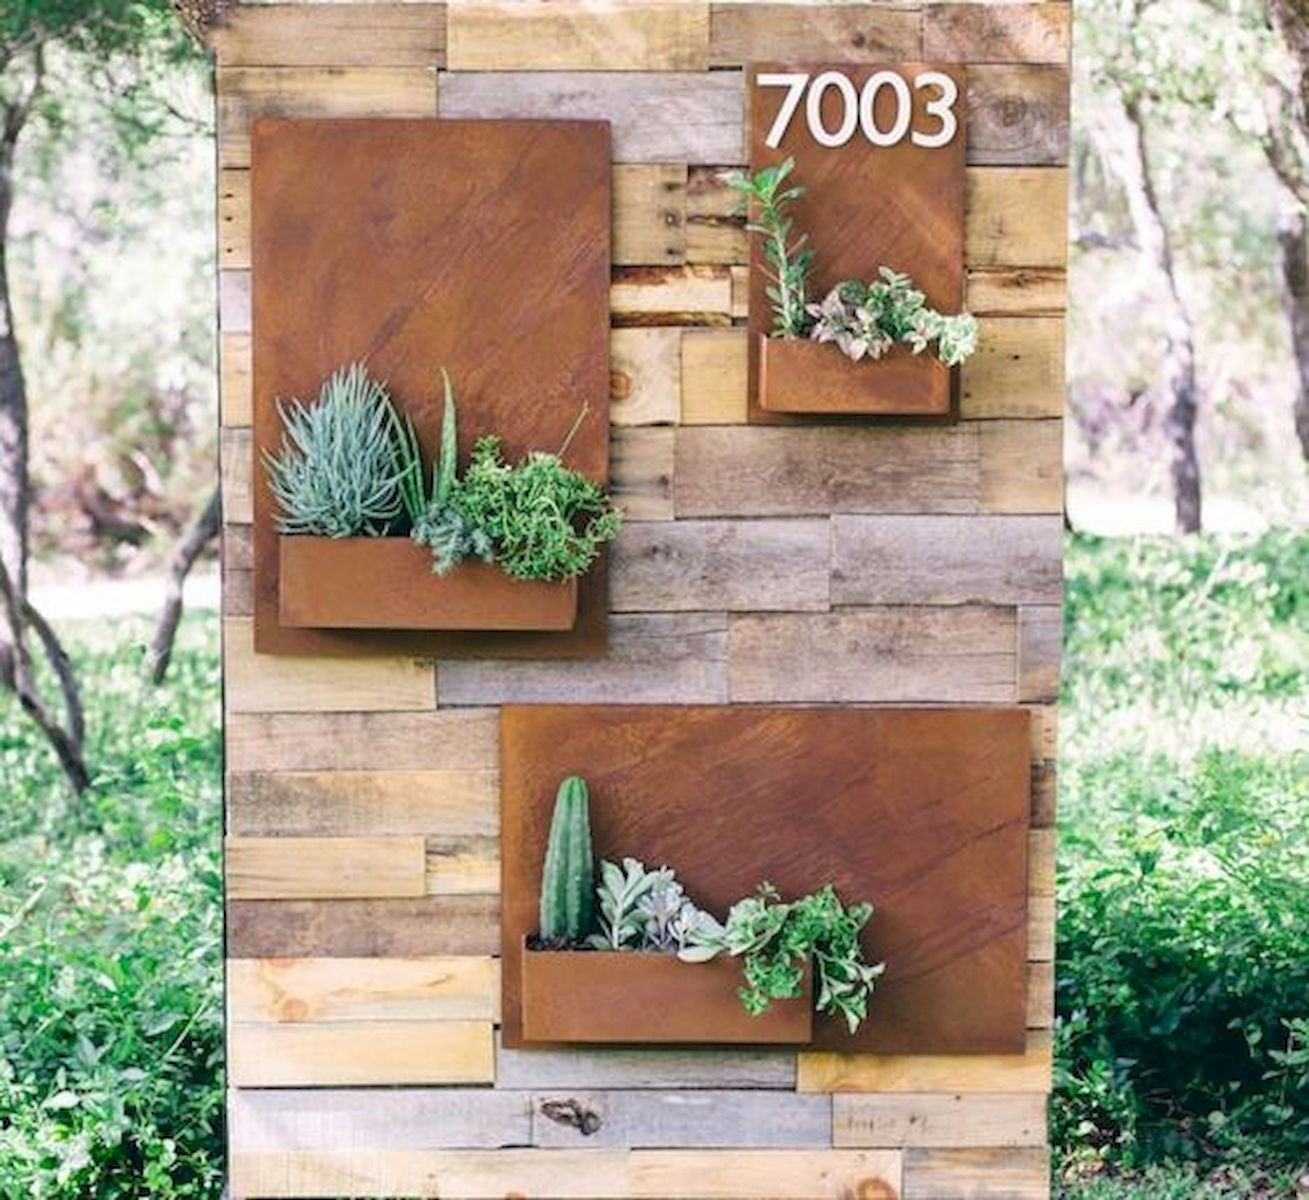 50 Awesome Modern Backyard Garden Design Ideas With Hanging Plants (21)